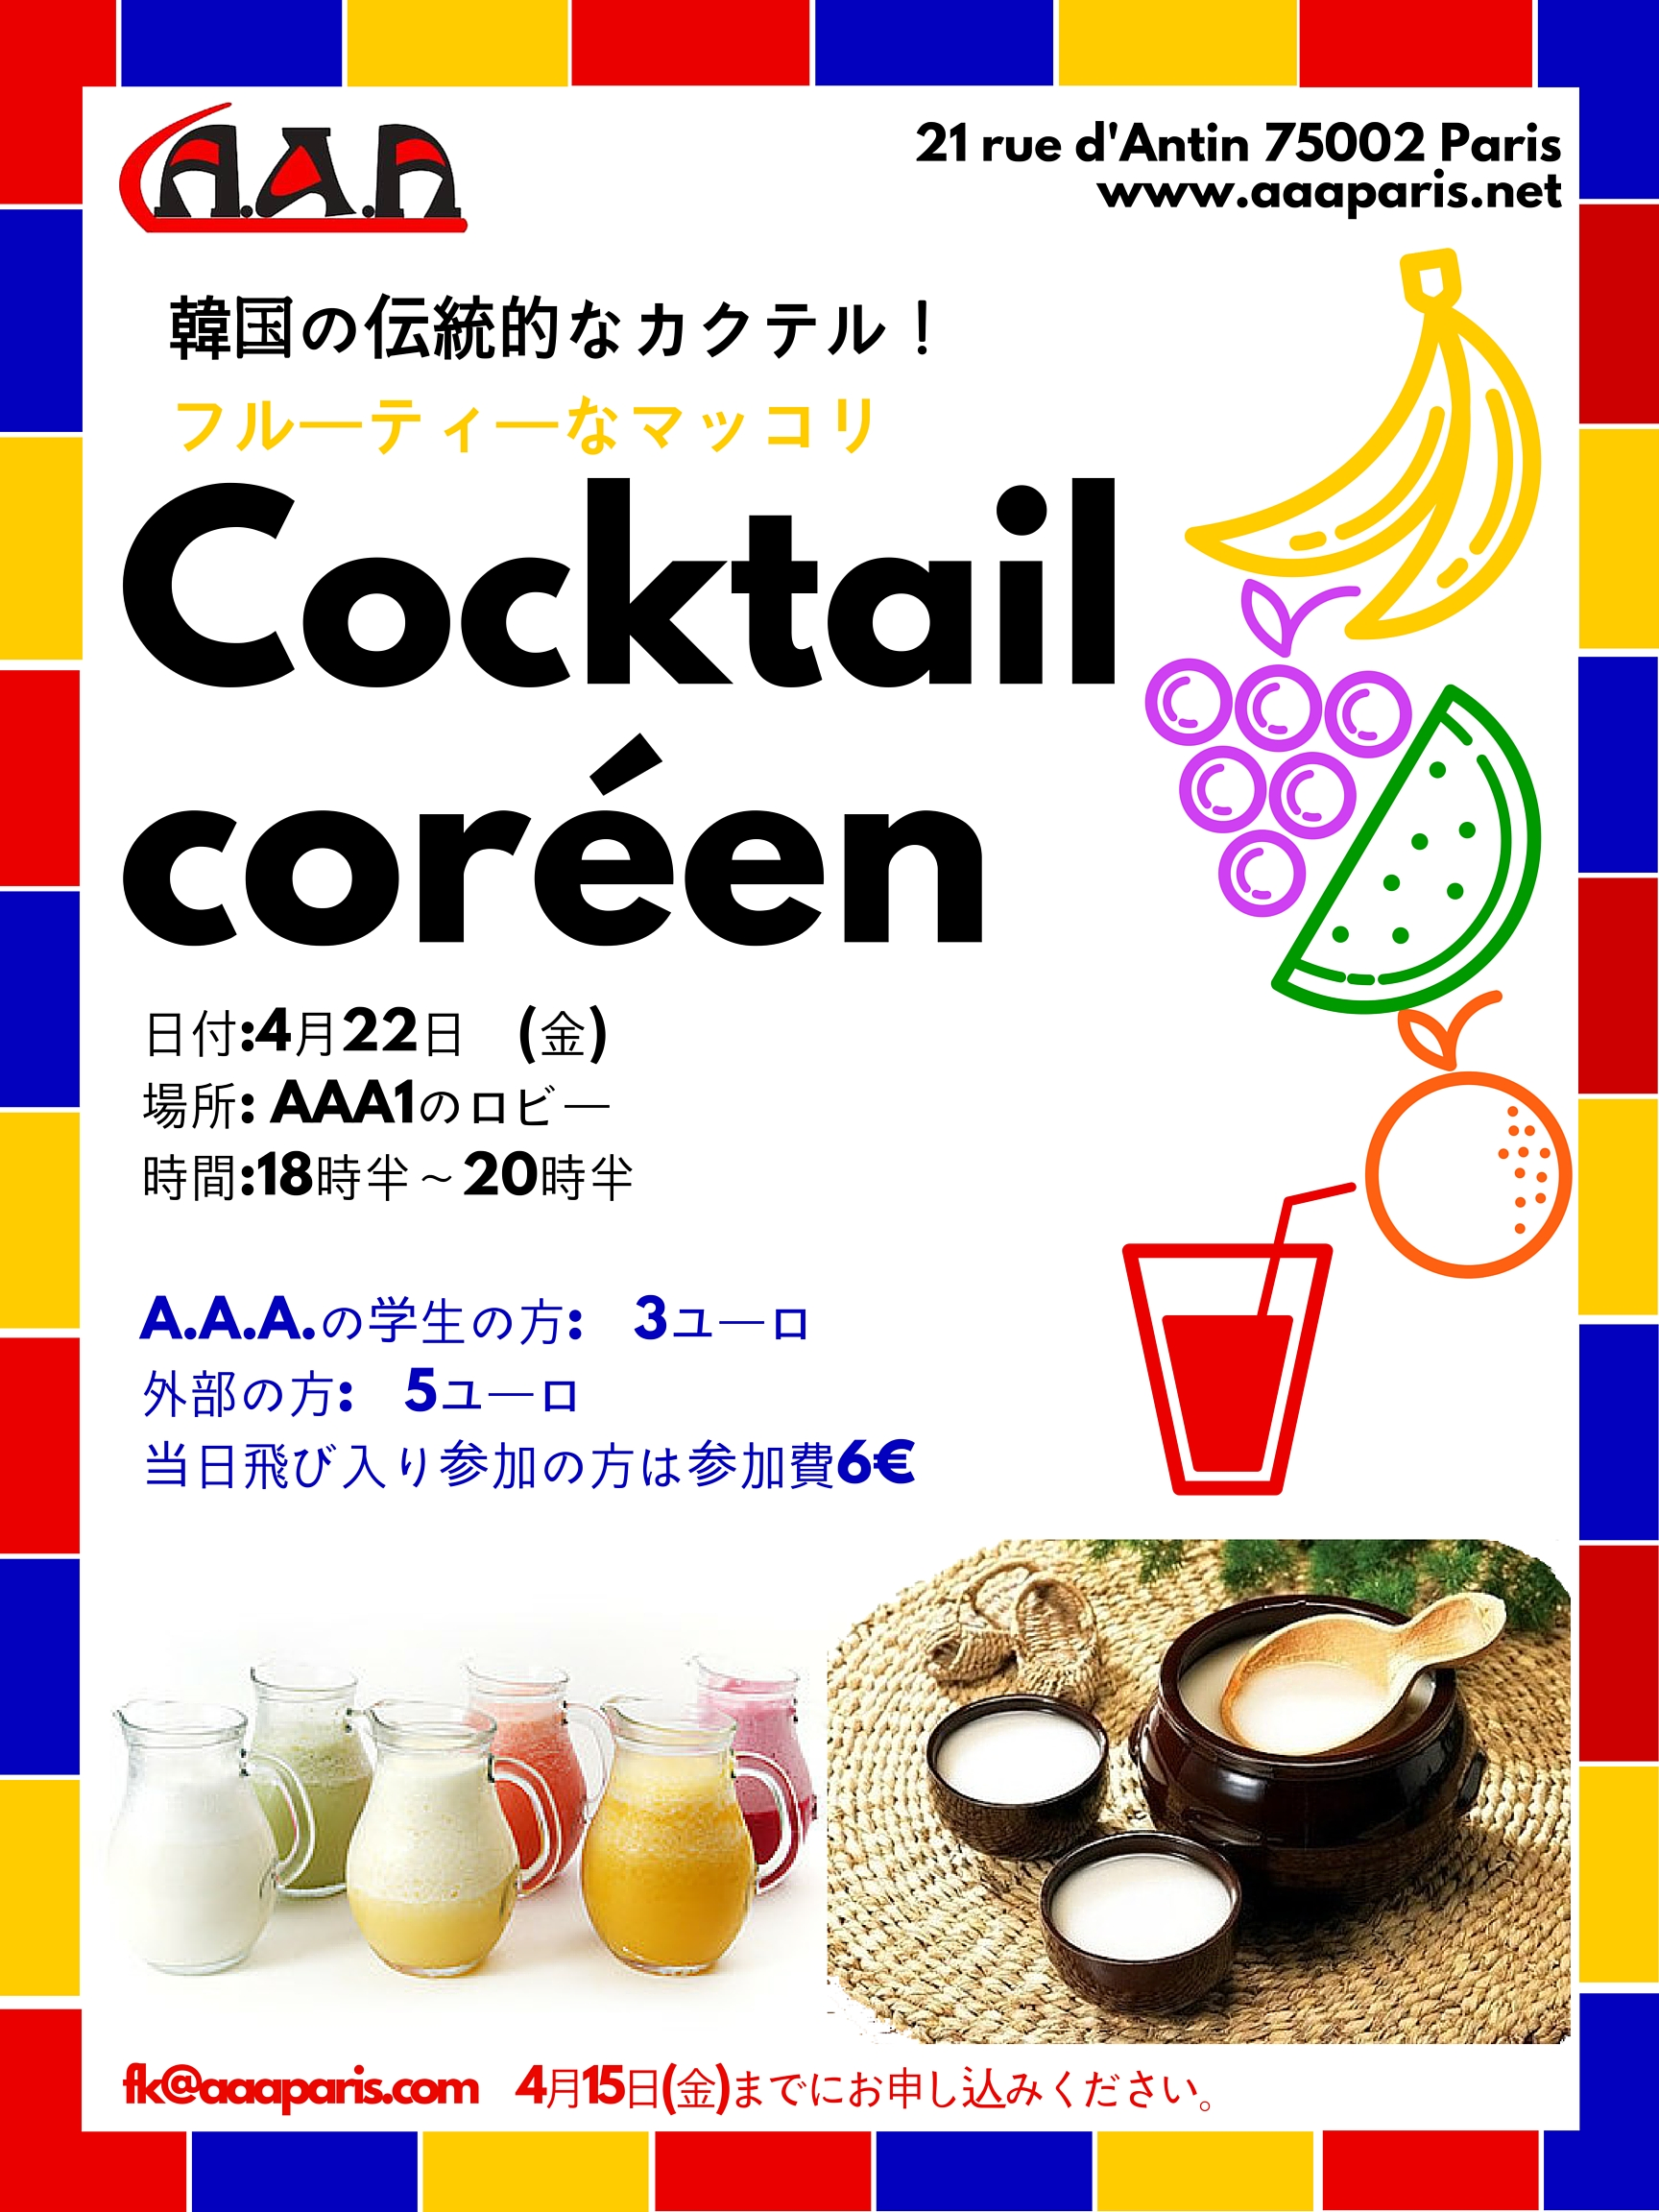 Cocktail japonais